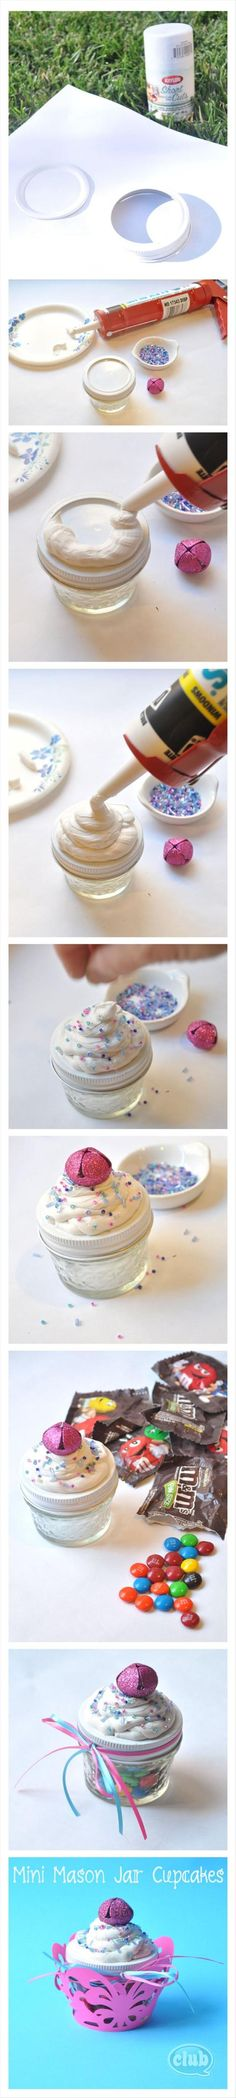 Fun Do It Yourself Craft Ideas - 34 Pics  Cute for birthdays or simple gifts